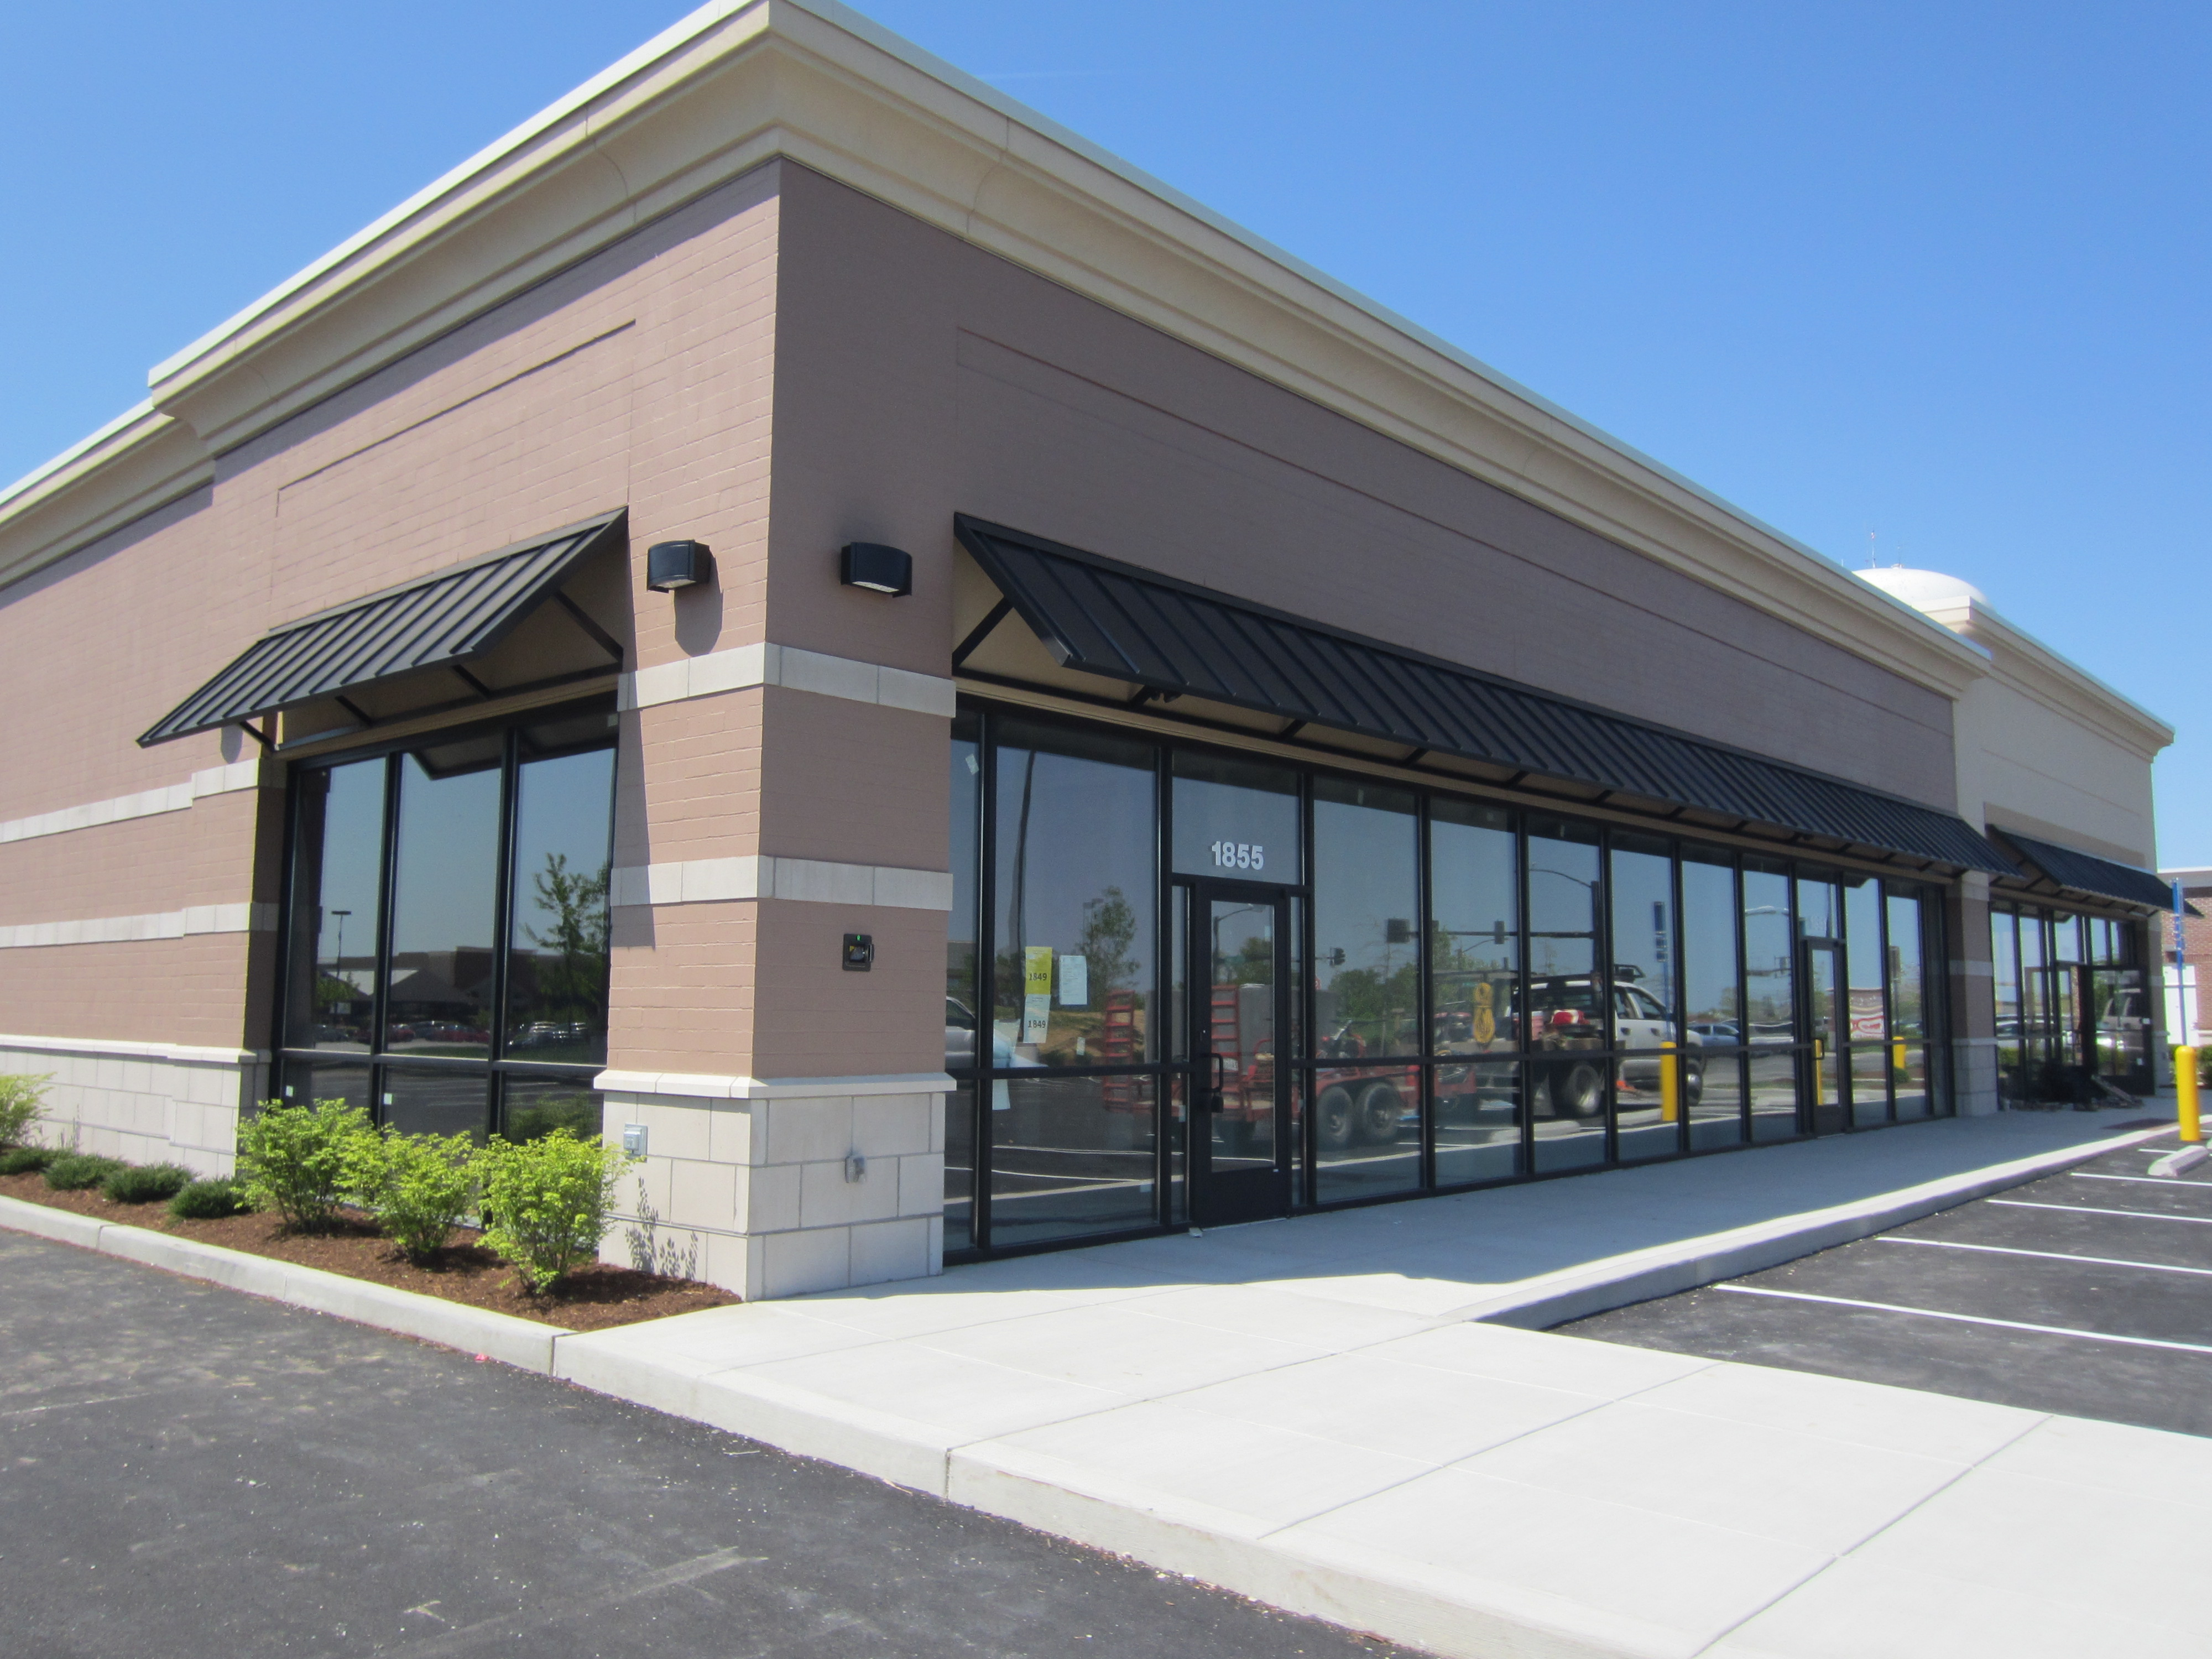 Metal Awnings Metal Awnings Chesterfield mo